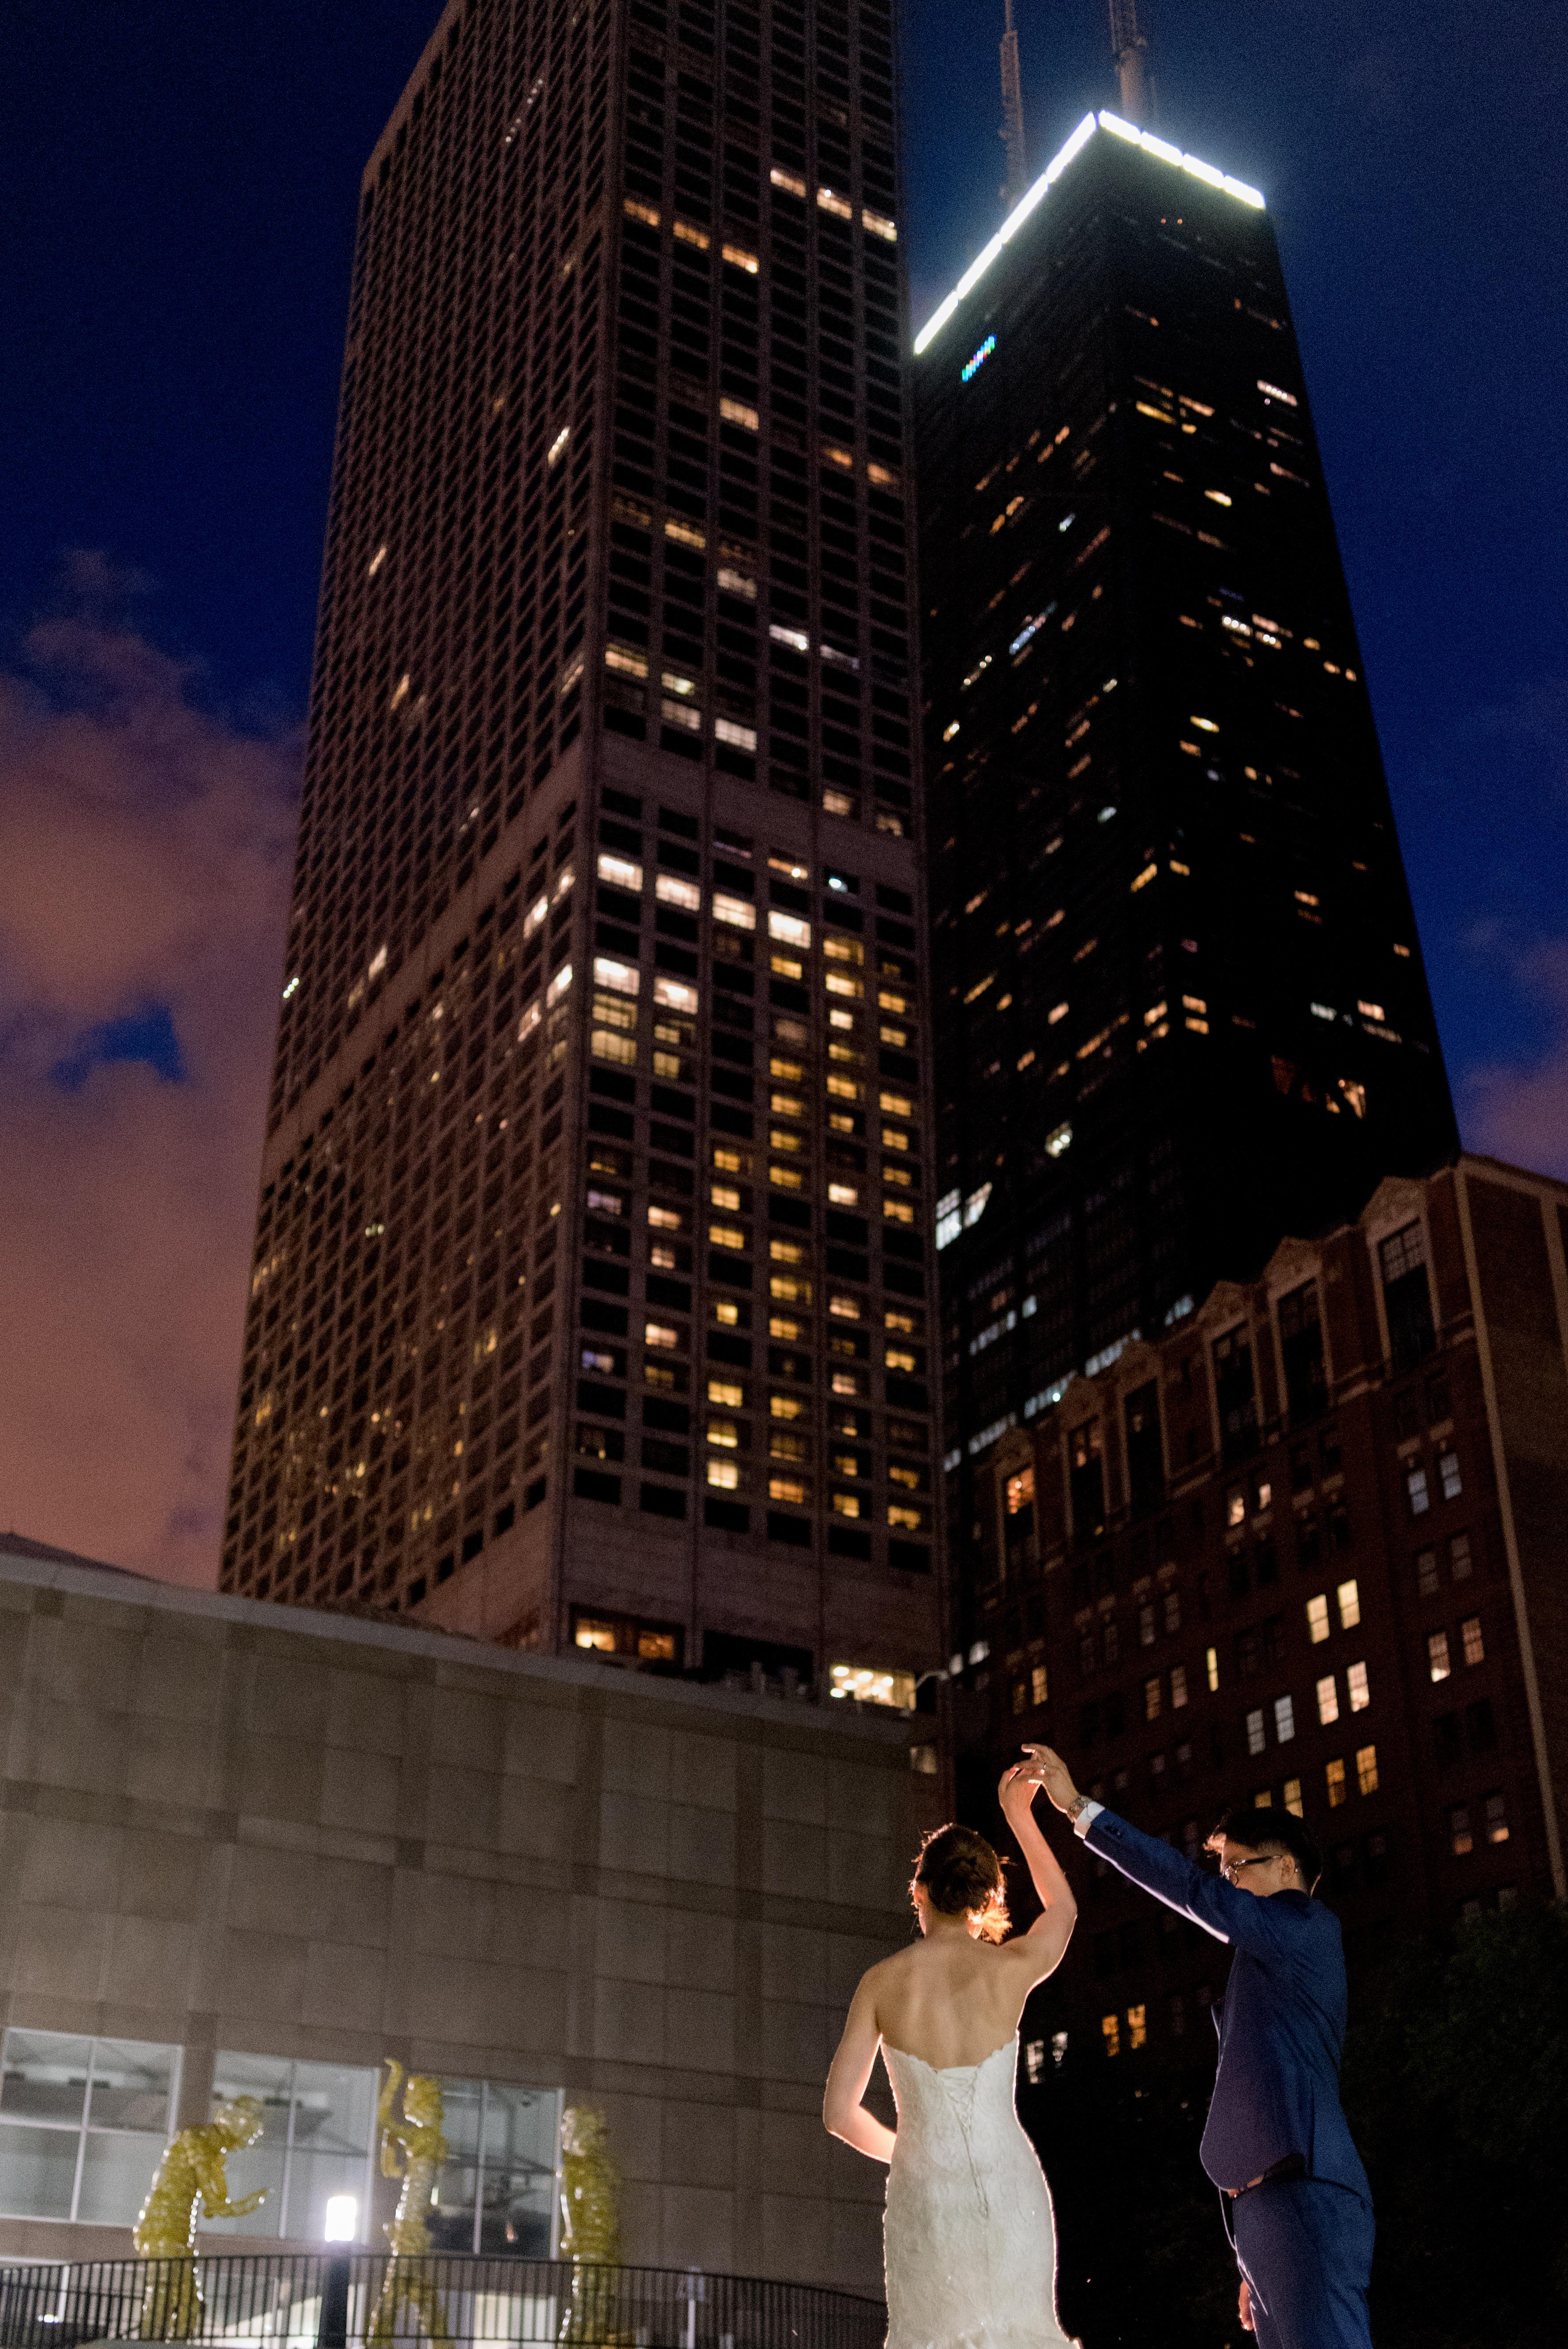 A woman in a white wedding dress and a man in a navy suit dance in the MCA's backyard with tall skyscrapers, including the John Hancock building, as the backdrop.